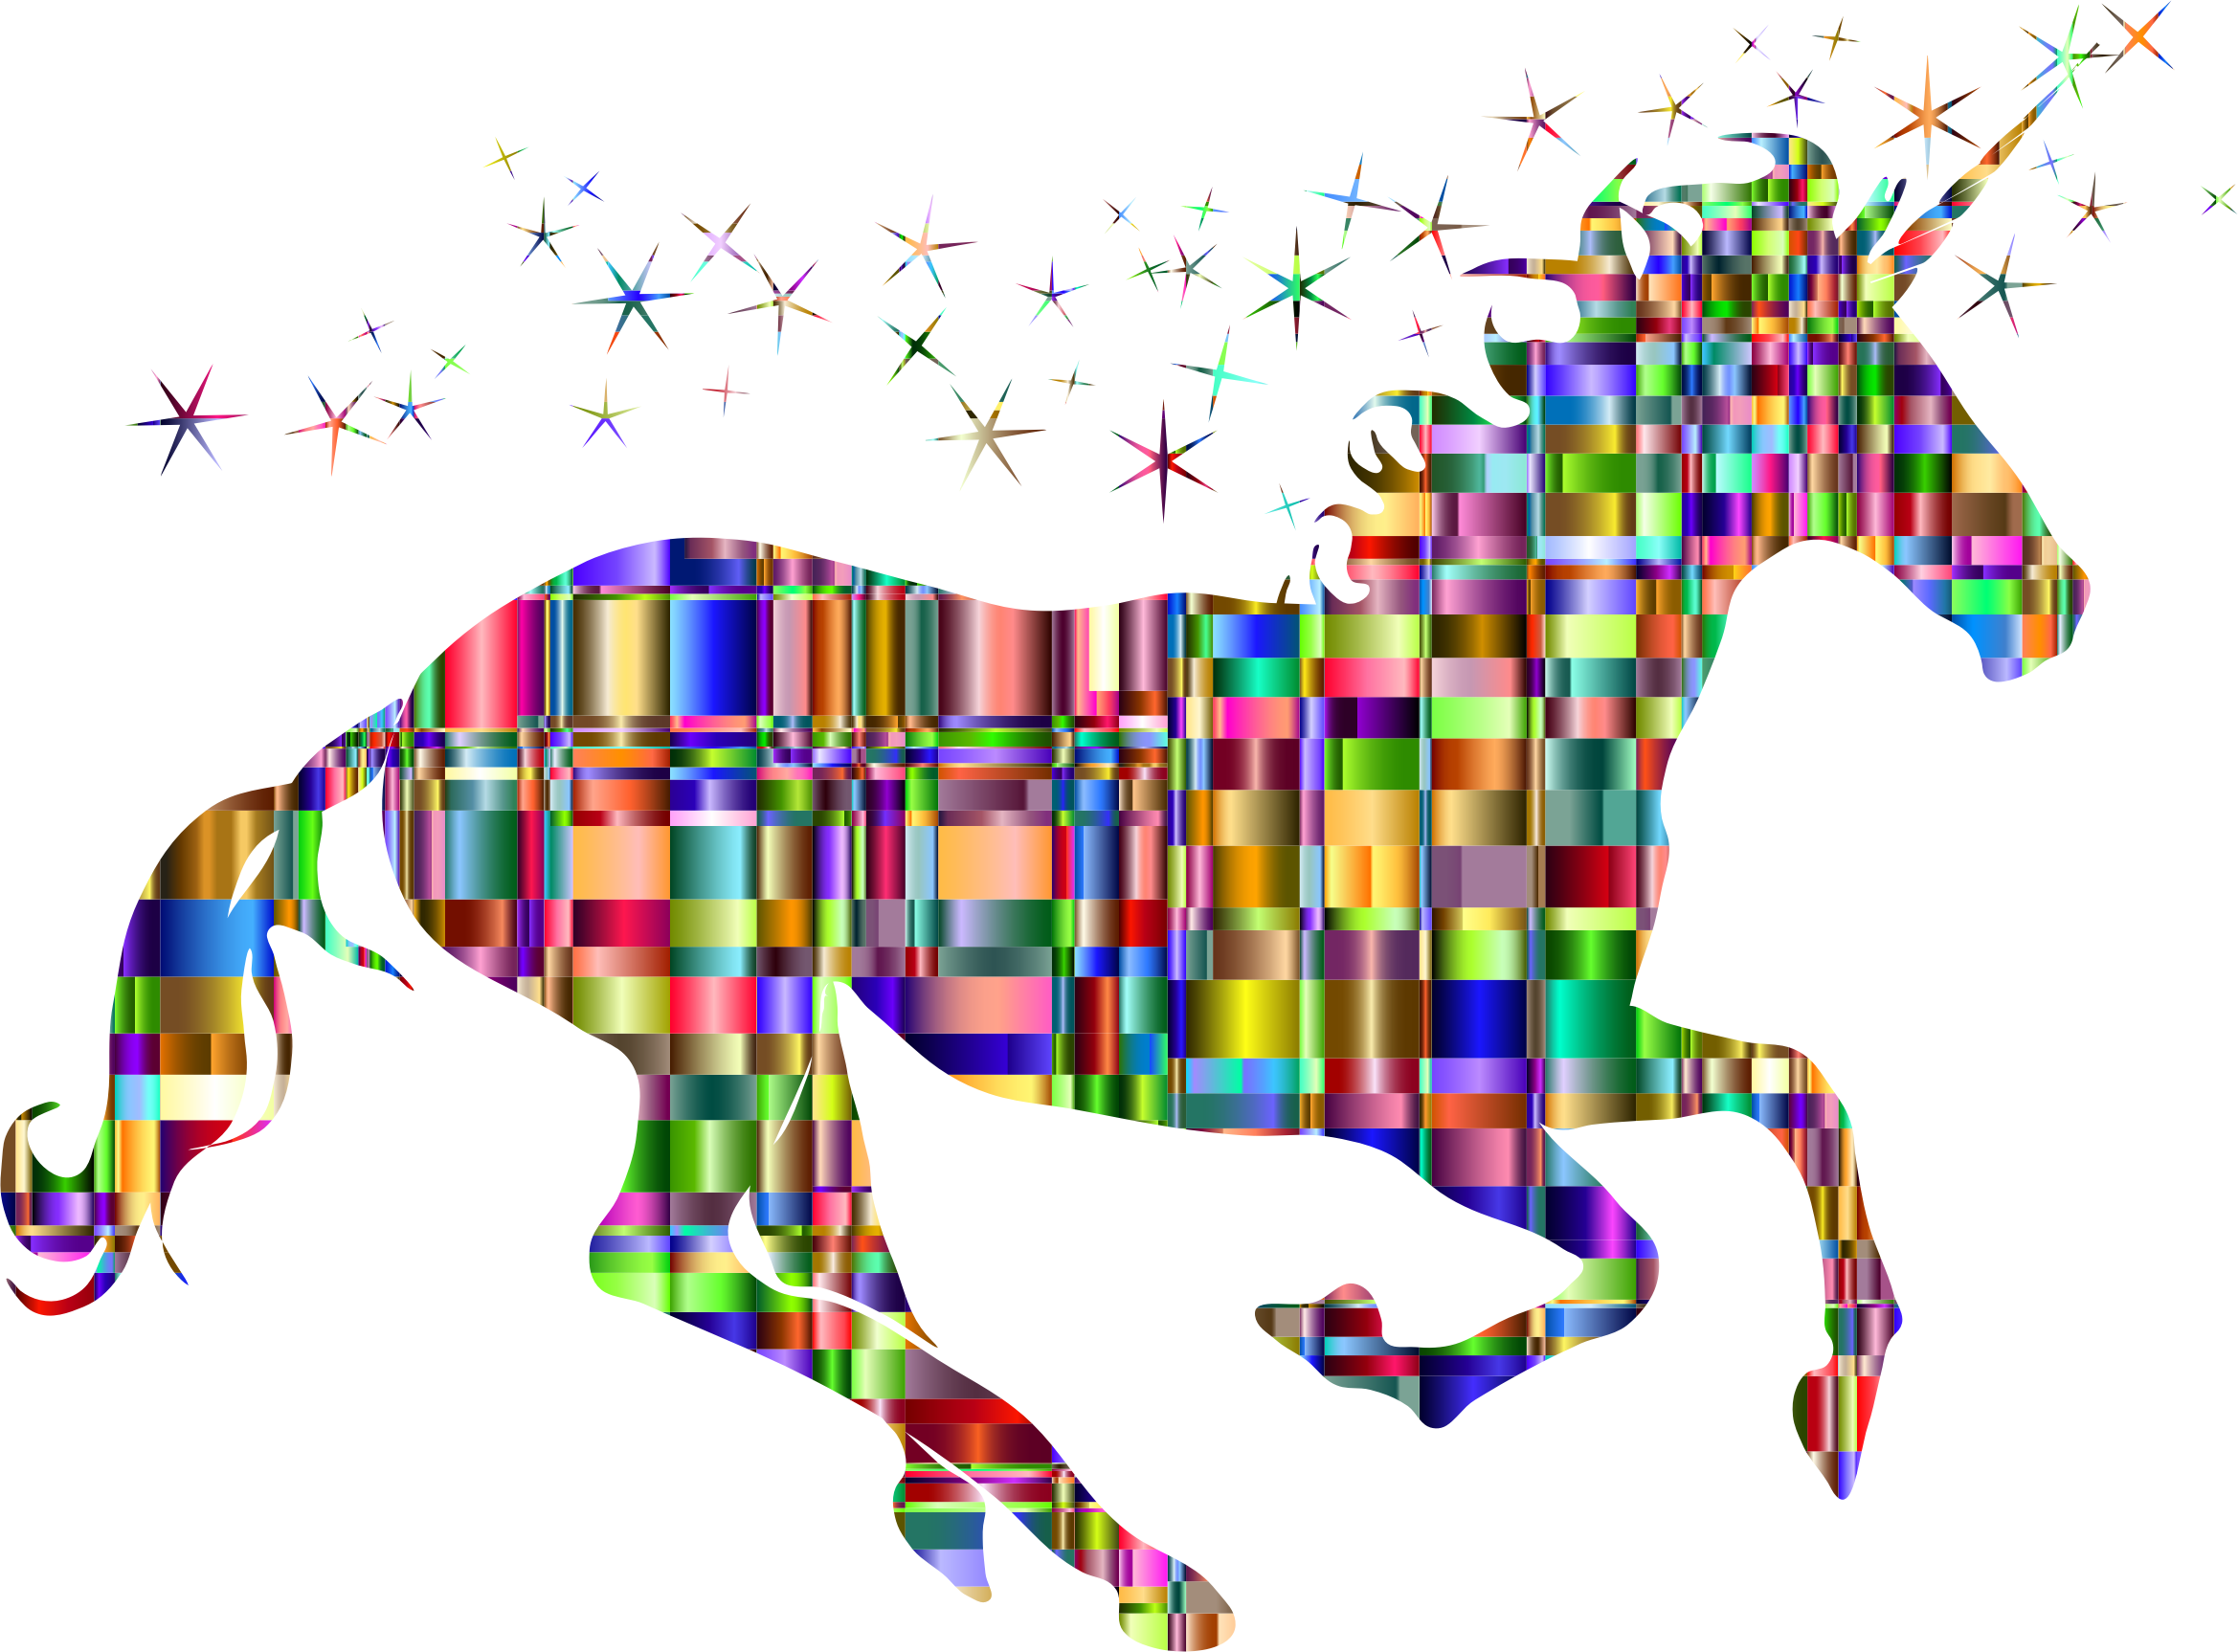 Checkered Chromatic Magical Unicorn by GDJ